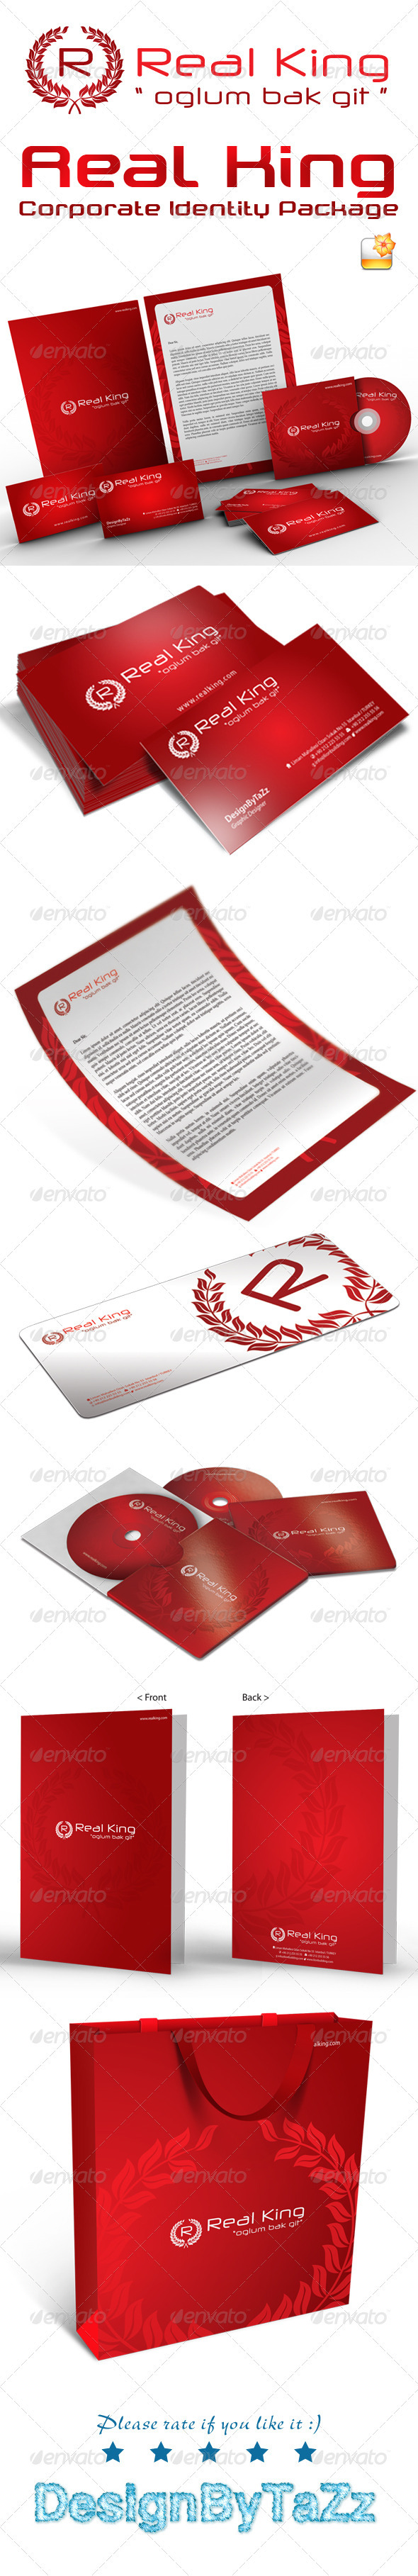 Real King Corporate Identity Package